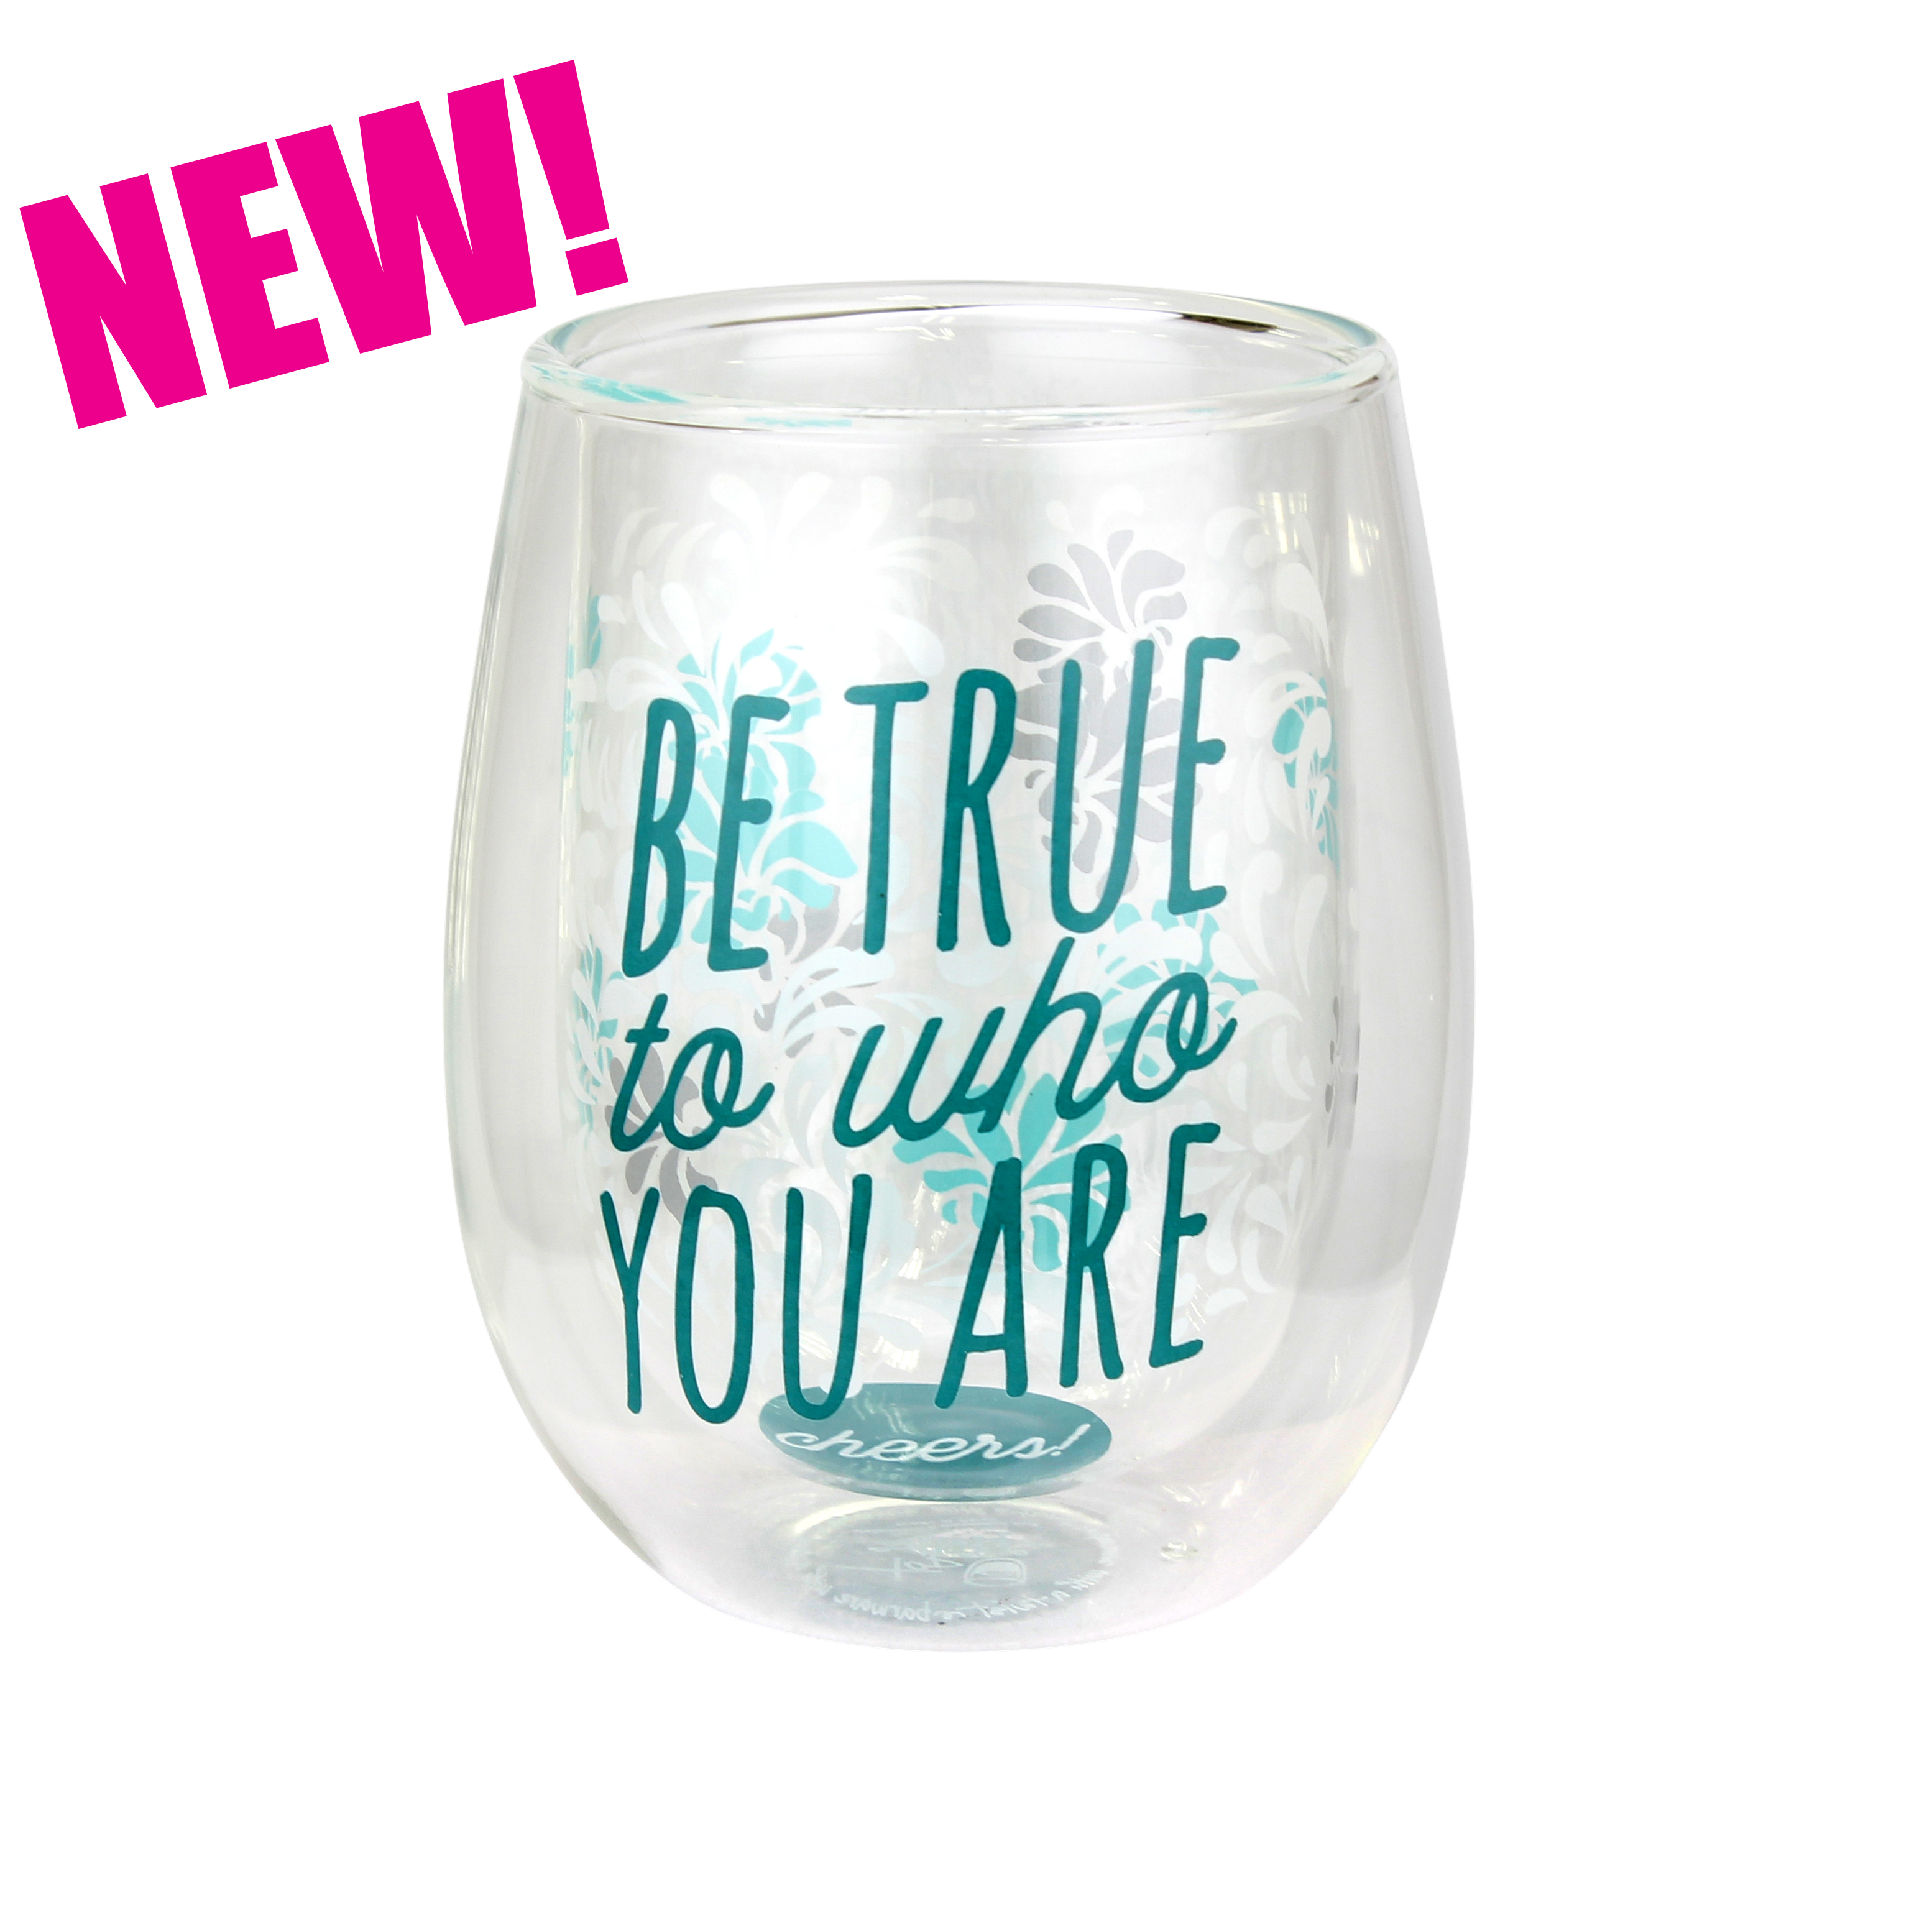 Be True to Who You Are - Top Shelf Glasses